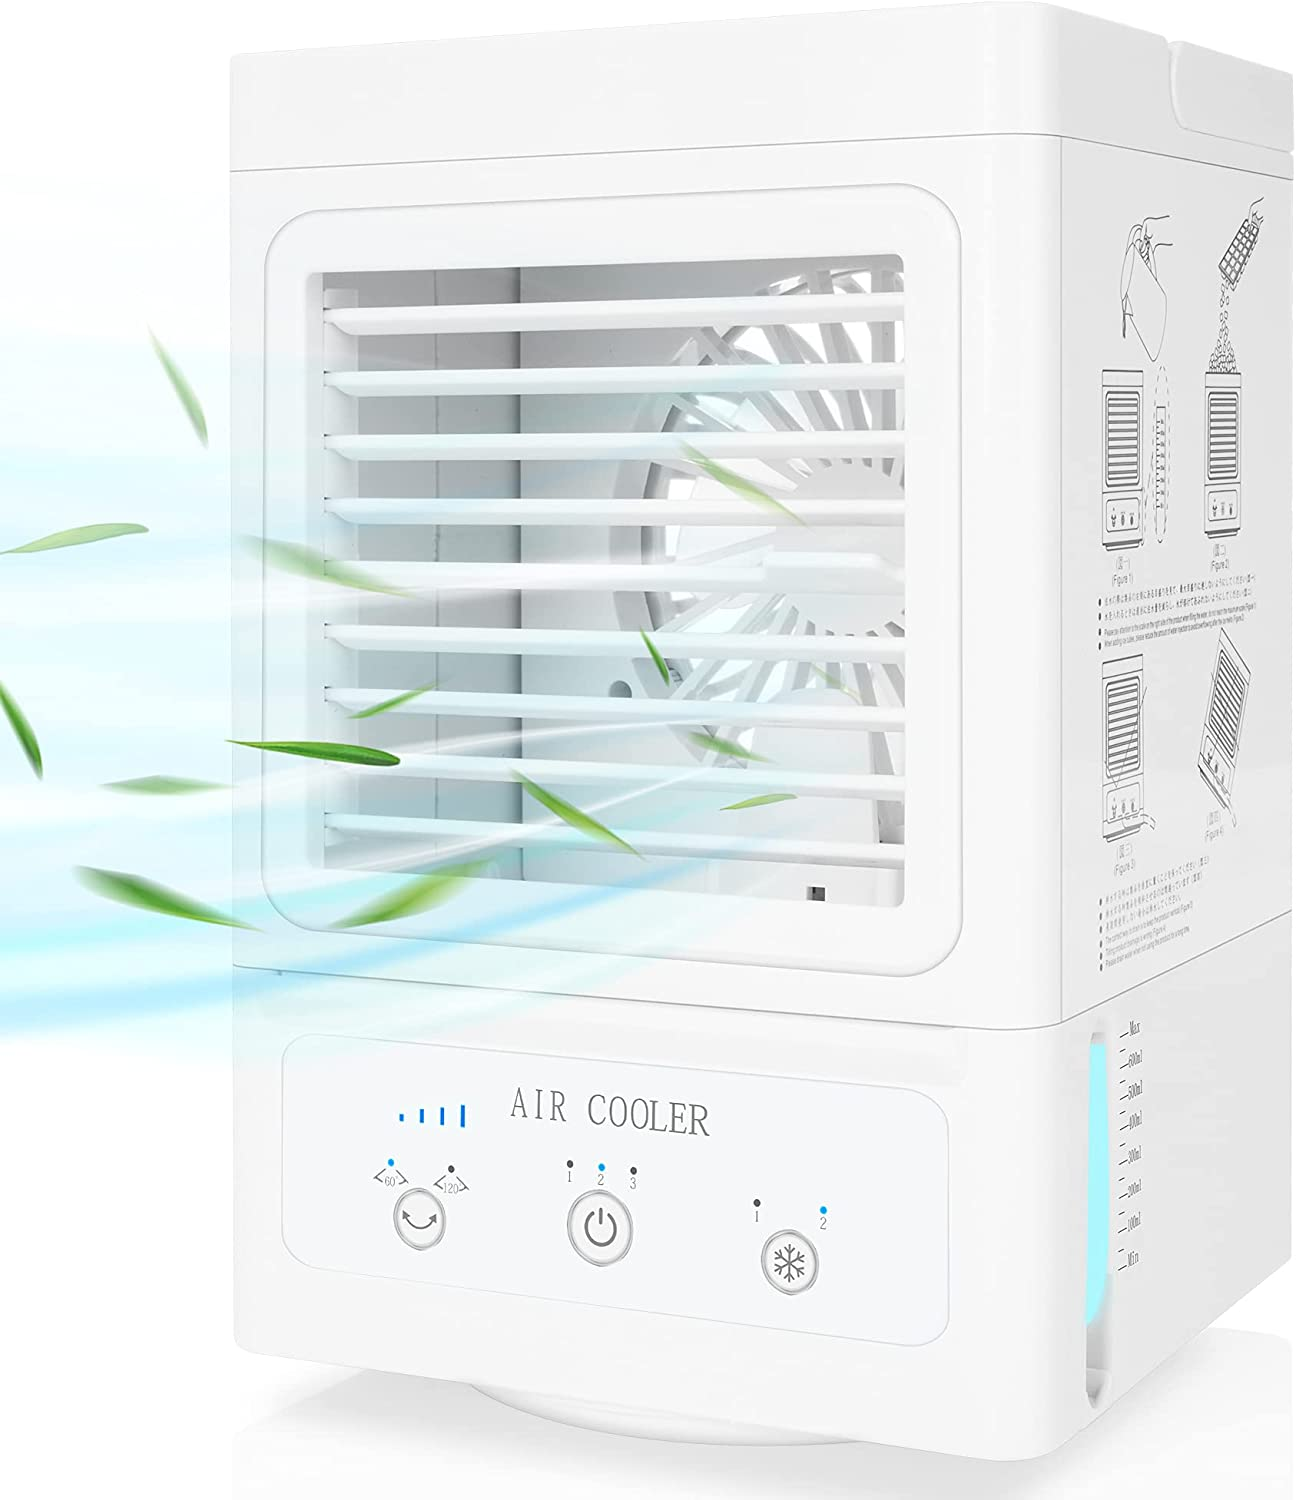 Portable Air Conditioner Fan, 120°Auto Oscillation Personal Mini Air Cooler with 3 Wind Speeds, 700ML Water Tank, 5000mAh Battery Operated Mini Humidifier, Perfect for Home Office Outdoor